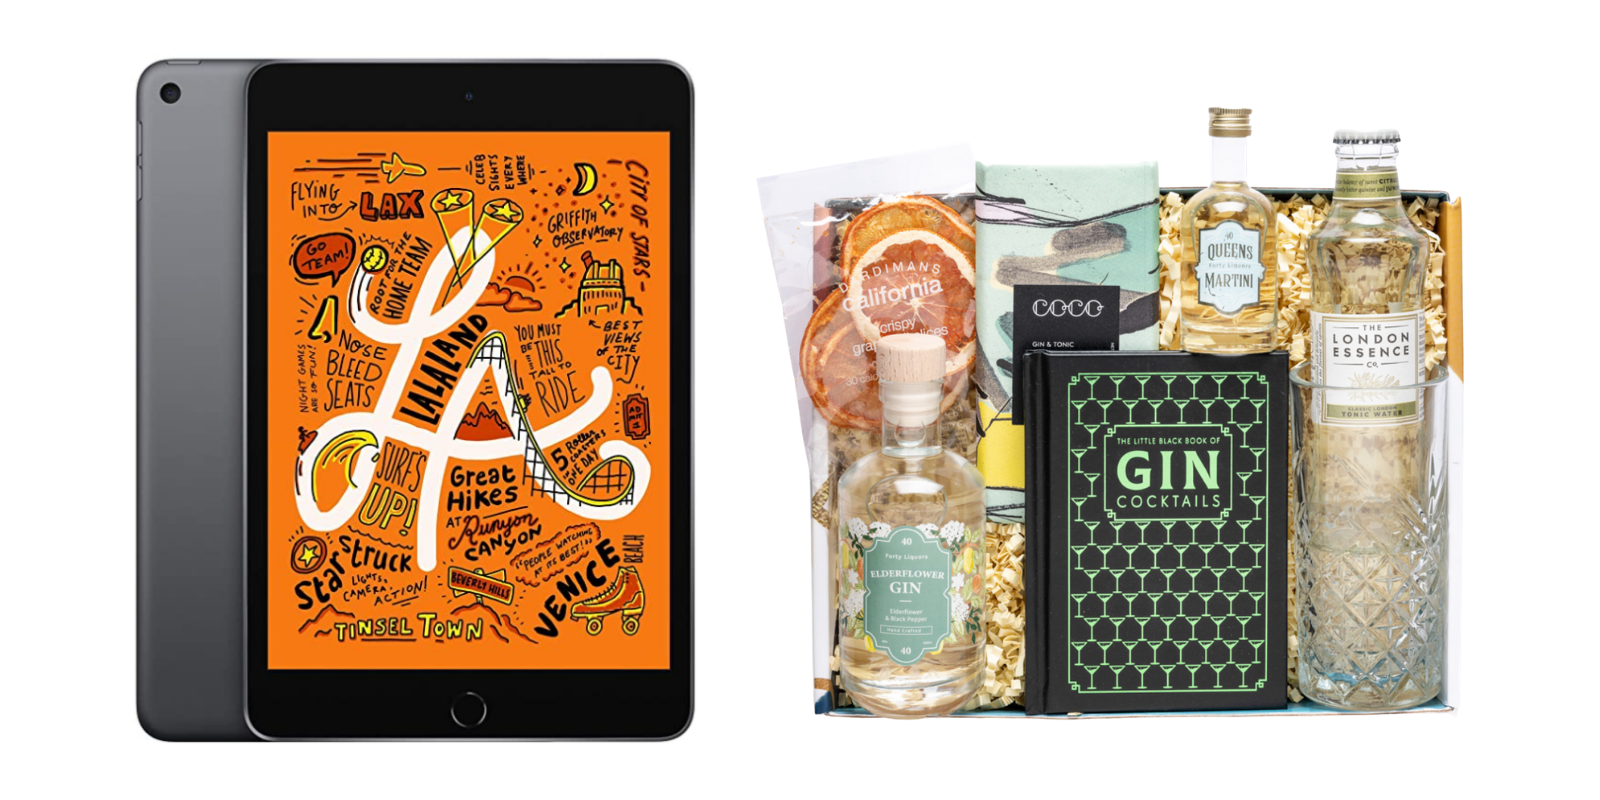 photo of an ipad mini and bottles of gin